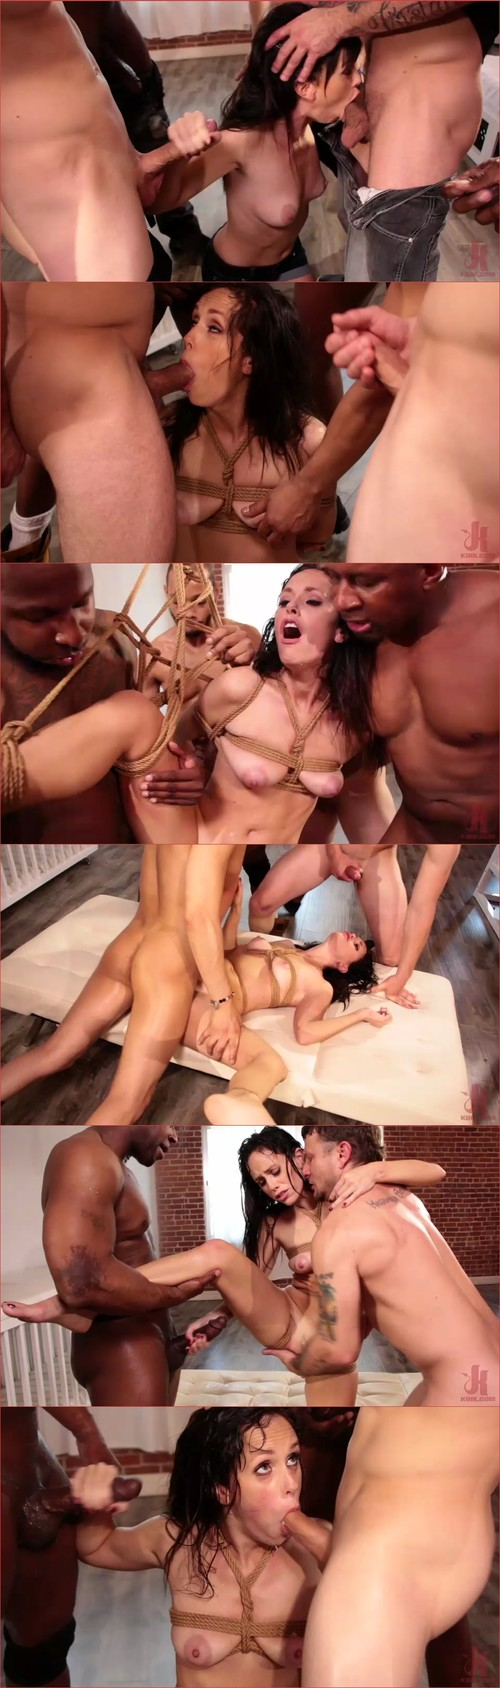 Alana Cruise Gangbang Porn nude alana cruise videos and pictures. recent posts, page 64